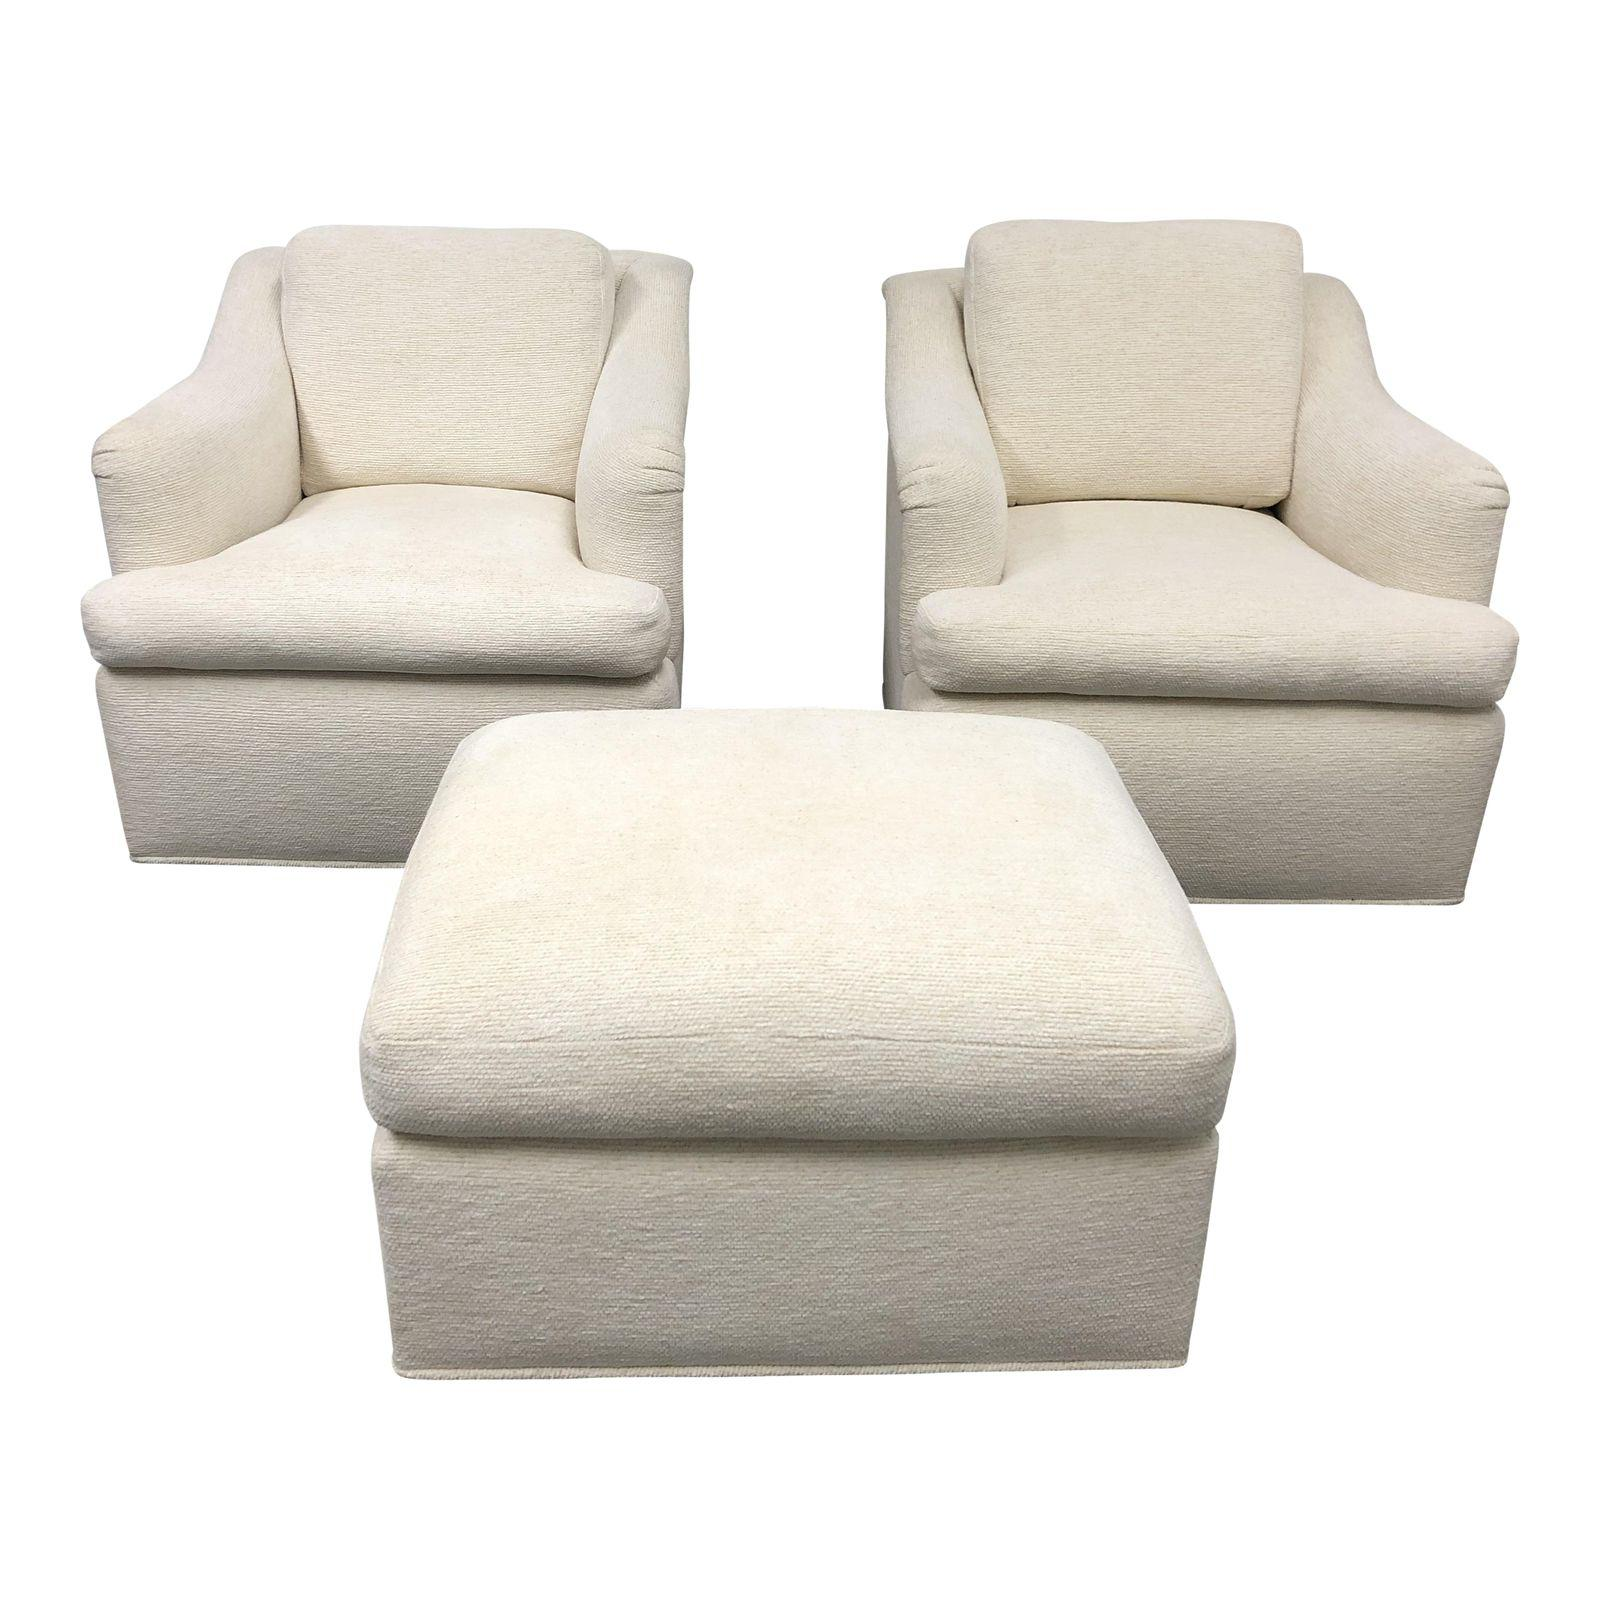 zahara swivel chair overstock dining chairs arm living room audidatlevante